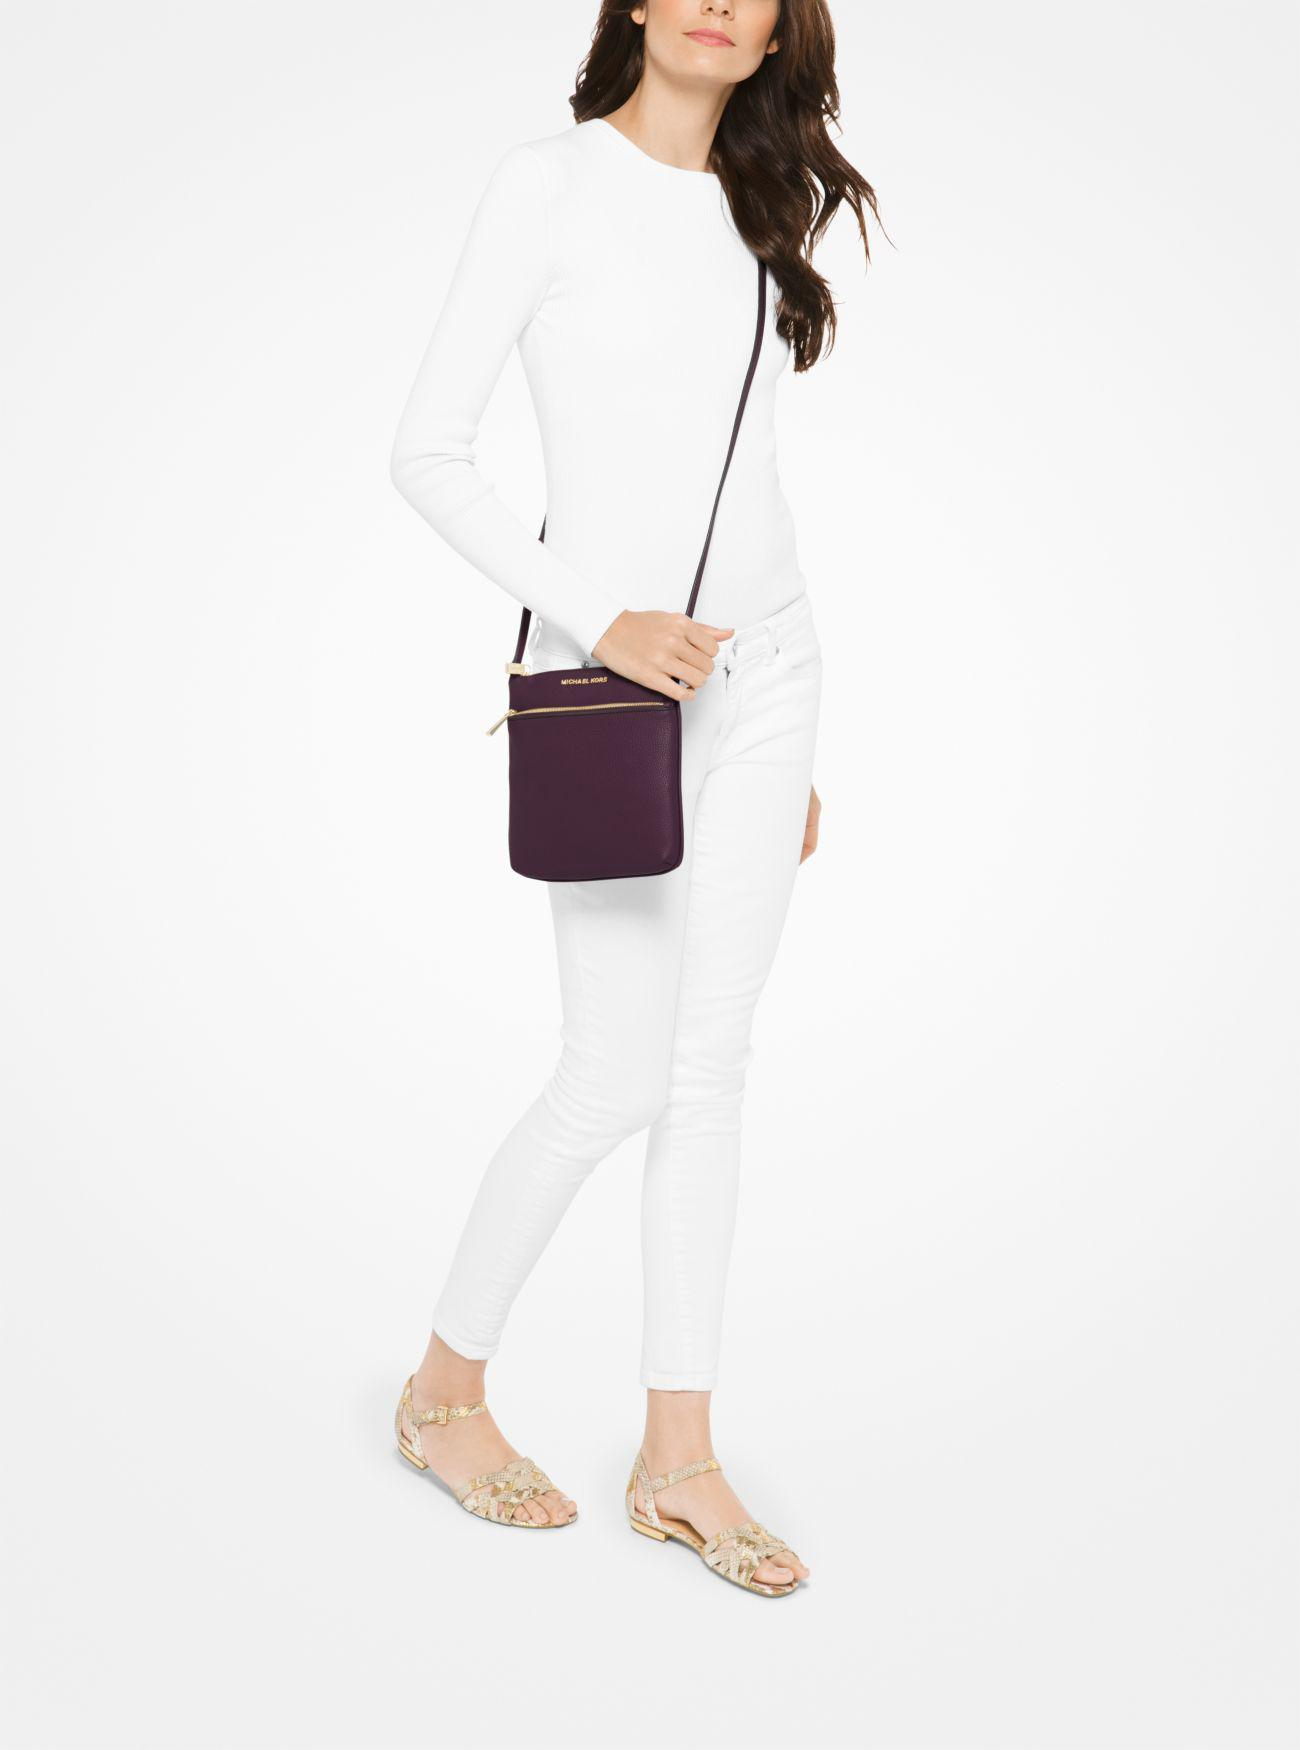 Lyst - Michael Kors Riley Small Pebbled-leather Crossbody 61e1022212461